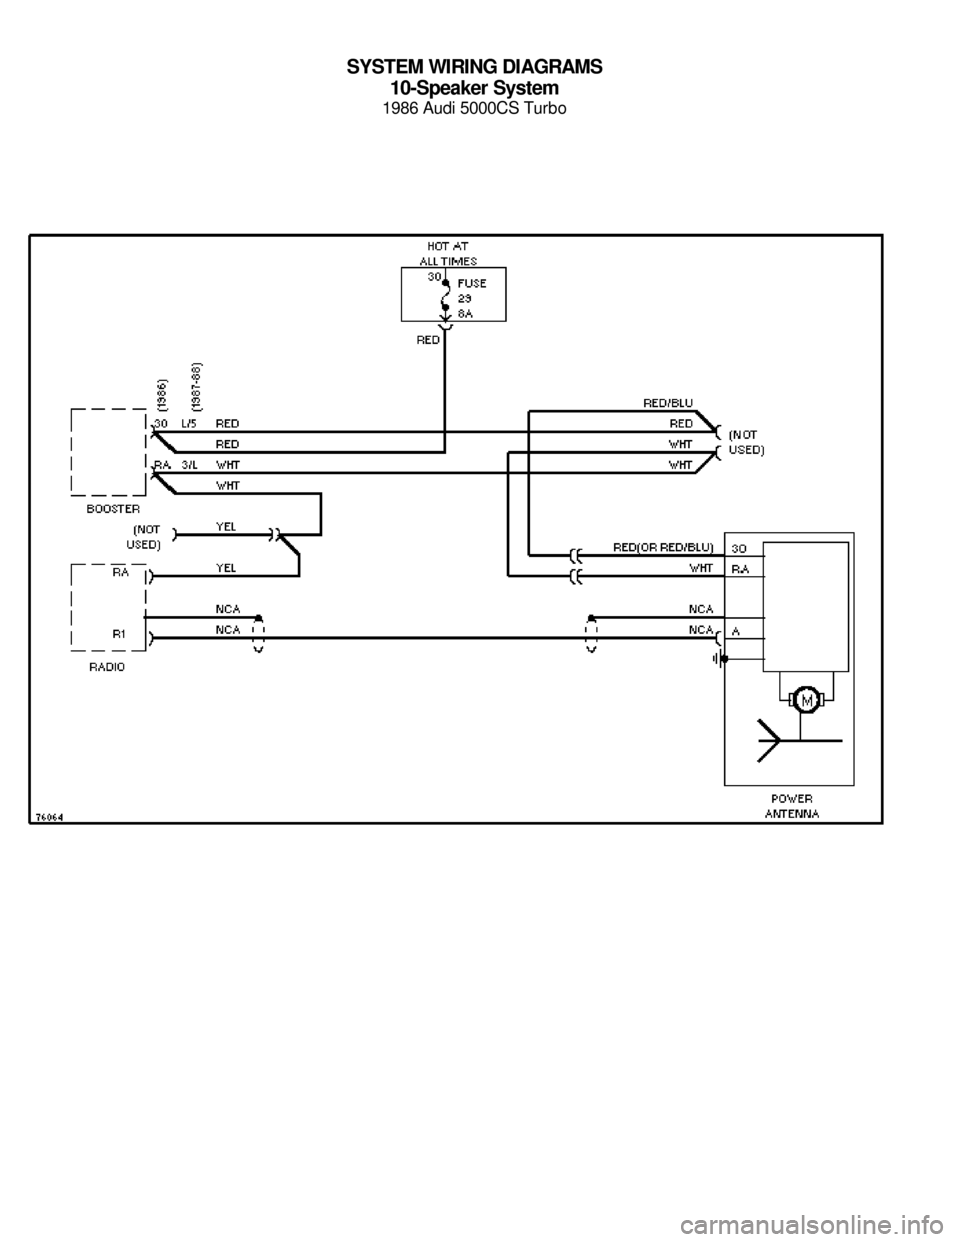 AUDI 5000CS 1986 C2 System Wiring Diagram (27 Pages)